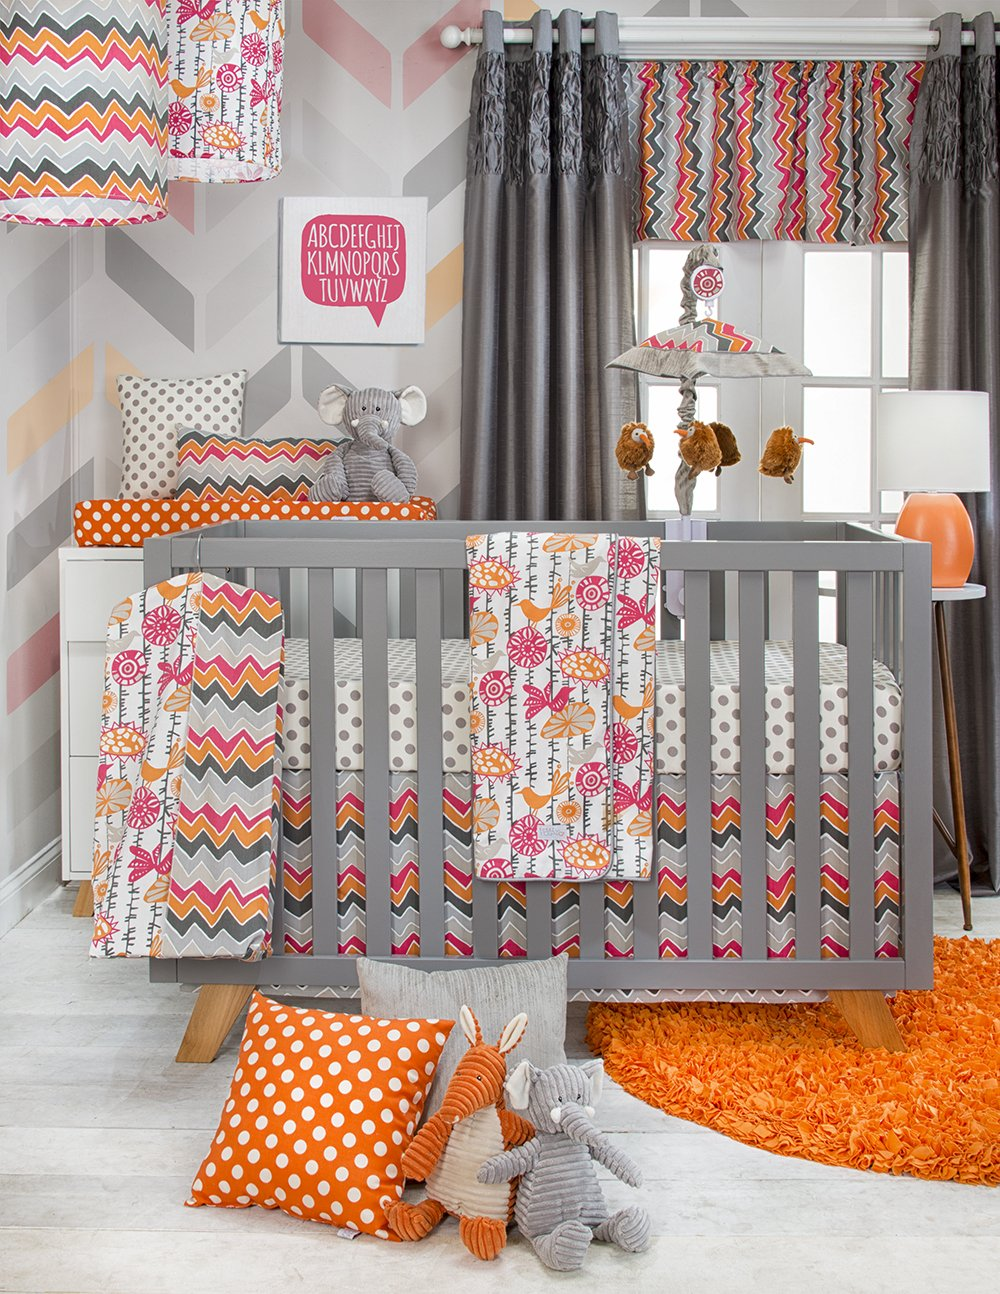 Sweet Potato Calliope Baby Bedding